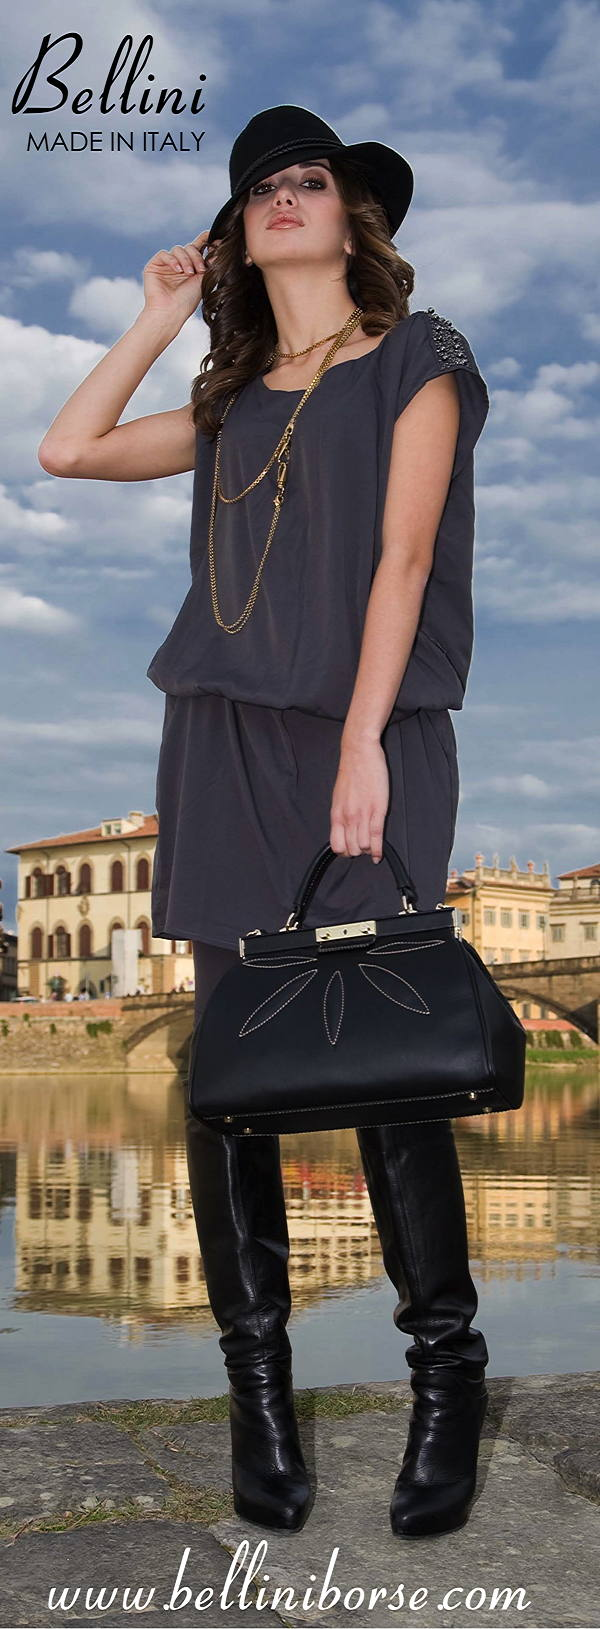 Bellini, fine Italian handbags.  Made in Italy leather handbags.  Wholesale, private label OEM.